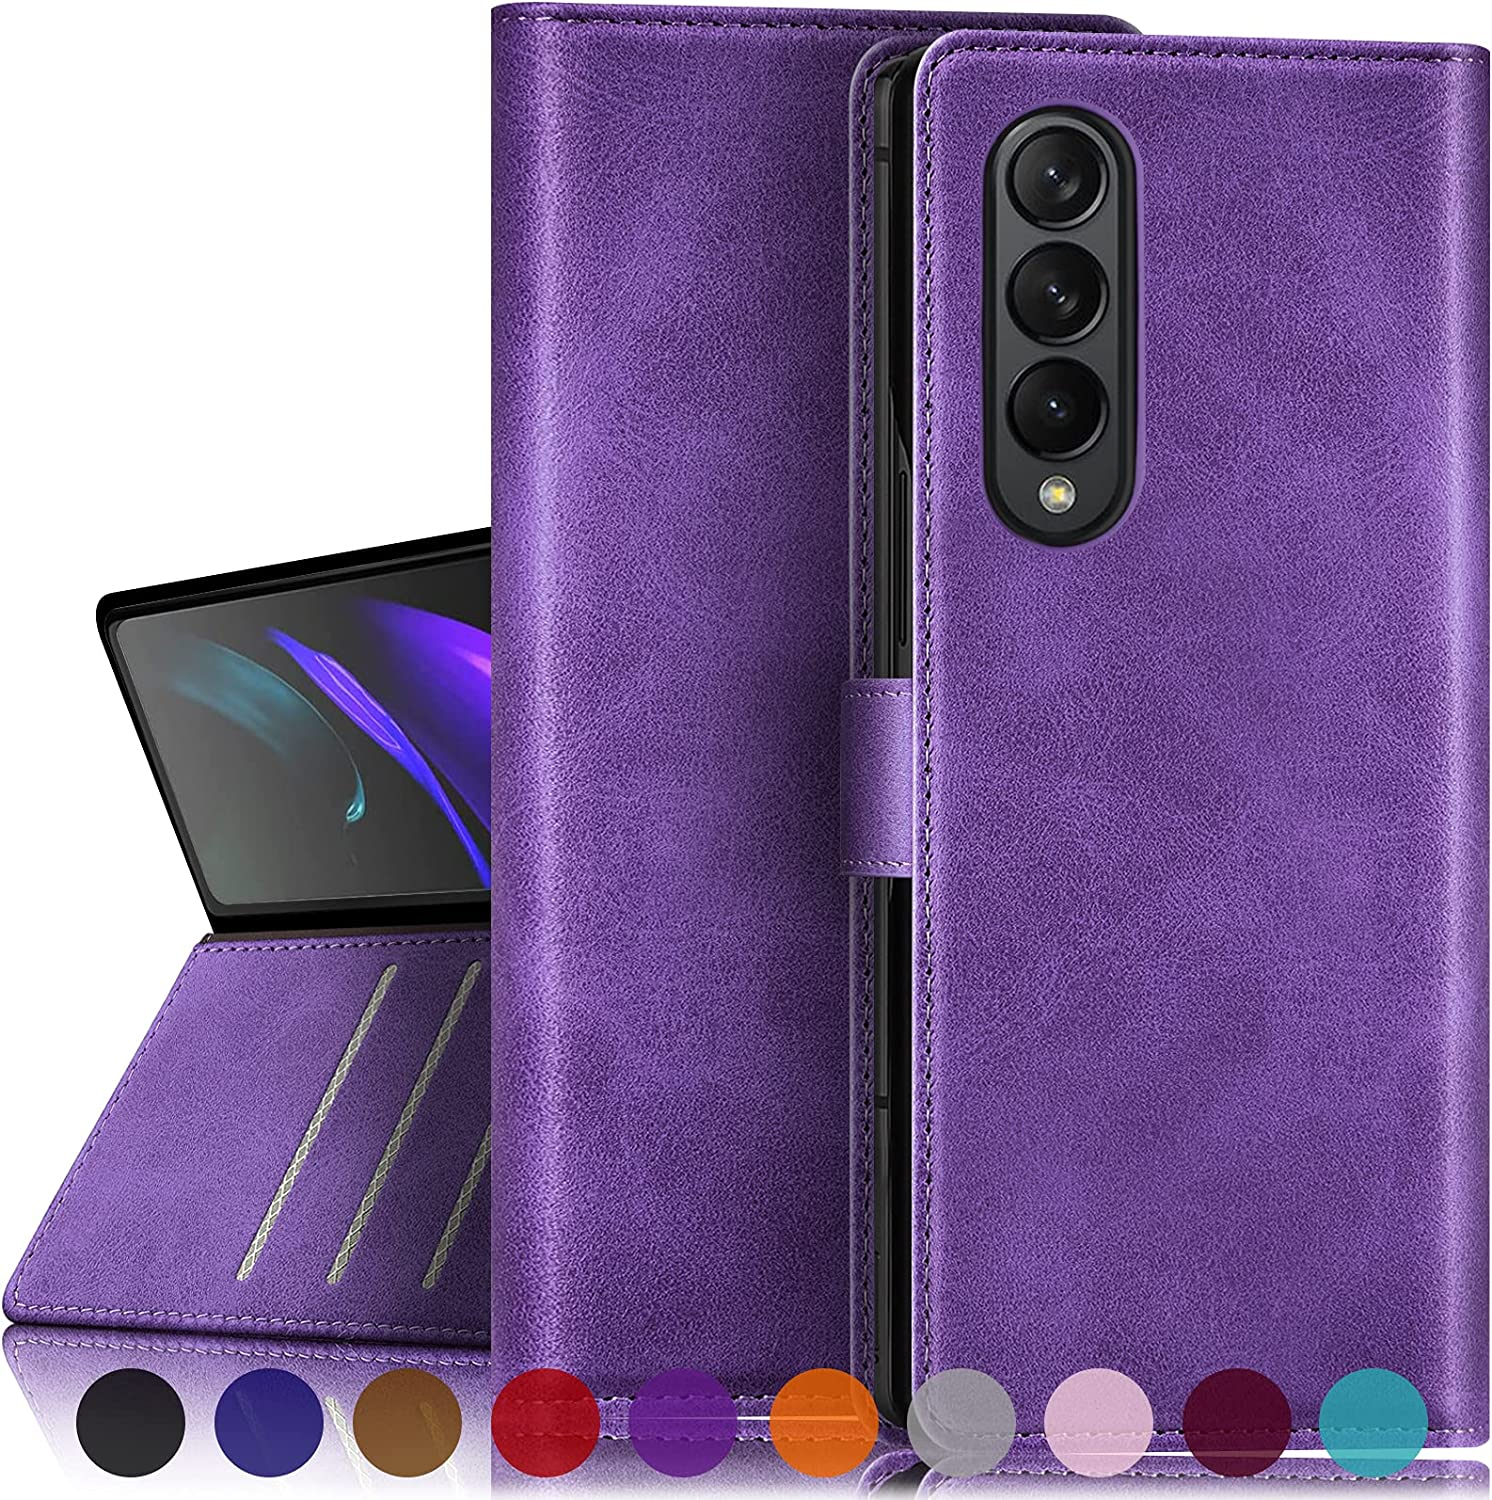 SUANPOT for Samsung Galaxy Fold 3 5G with RFID Blocking Wallet case Credit Card Holder,Flip Book PU Leather Phone case Shockproof Cover Cellphone Women Men for Samsung Fold 3 case Wallet (Purple)